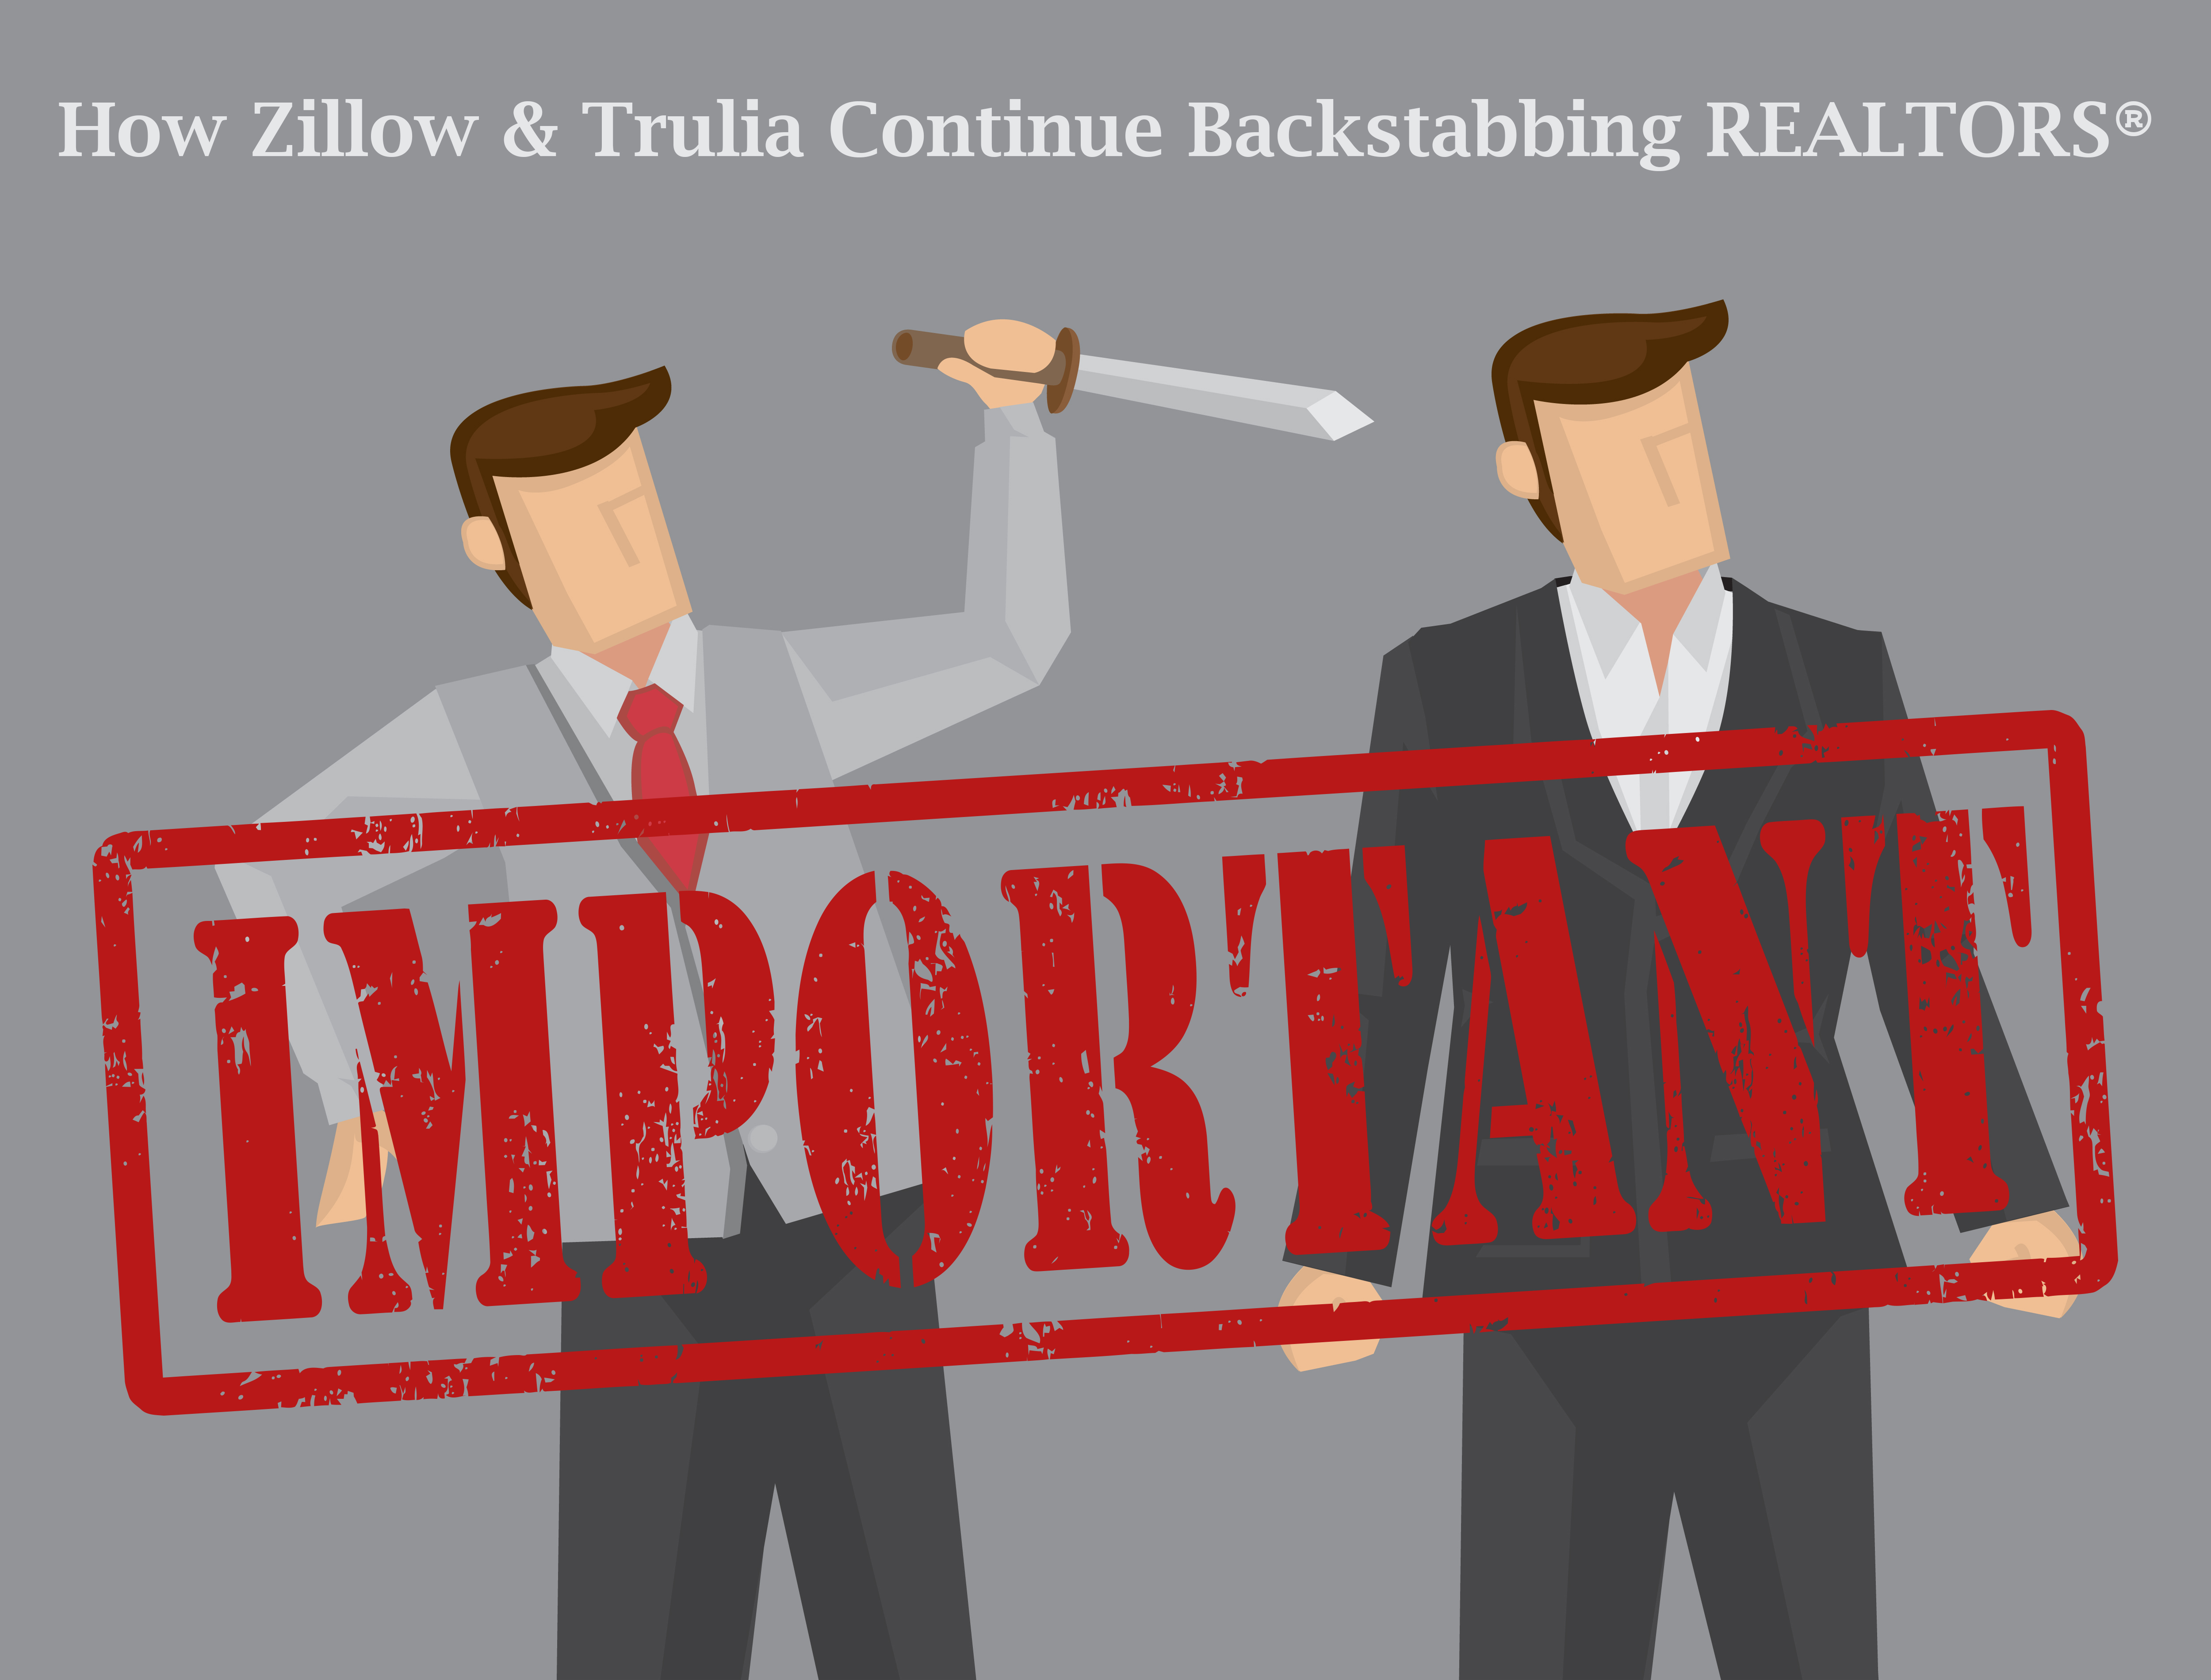 how zillow group continues backstabbing realtors